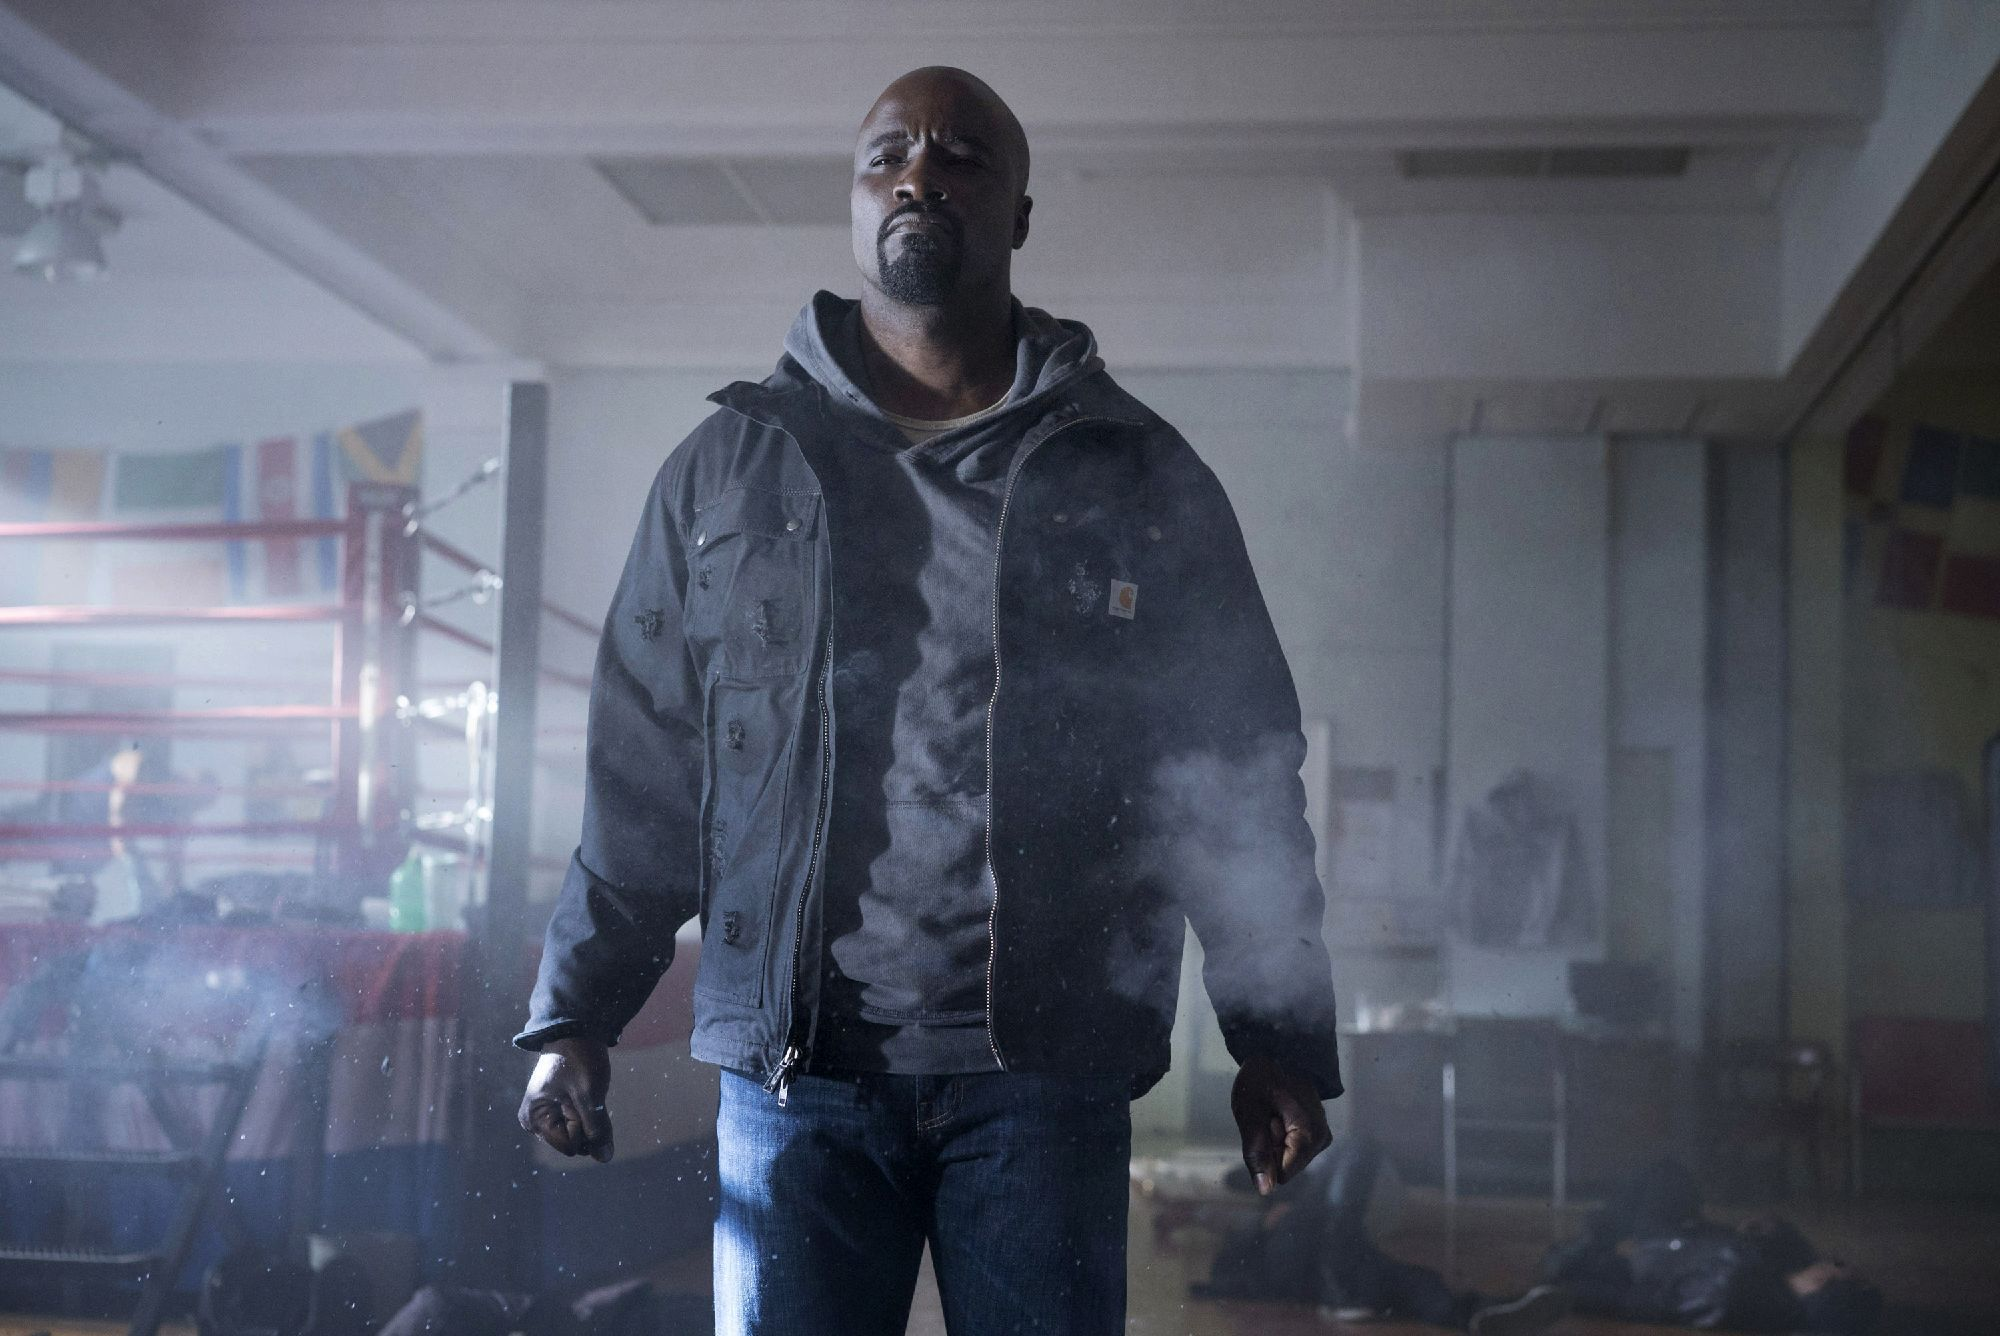 Luke Cage Season 1 Promotional Picture Luke Cage Netflix 39887896 3000 2004